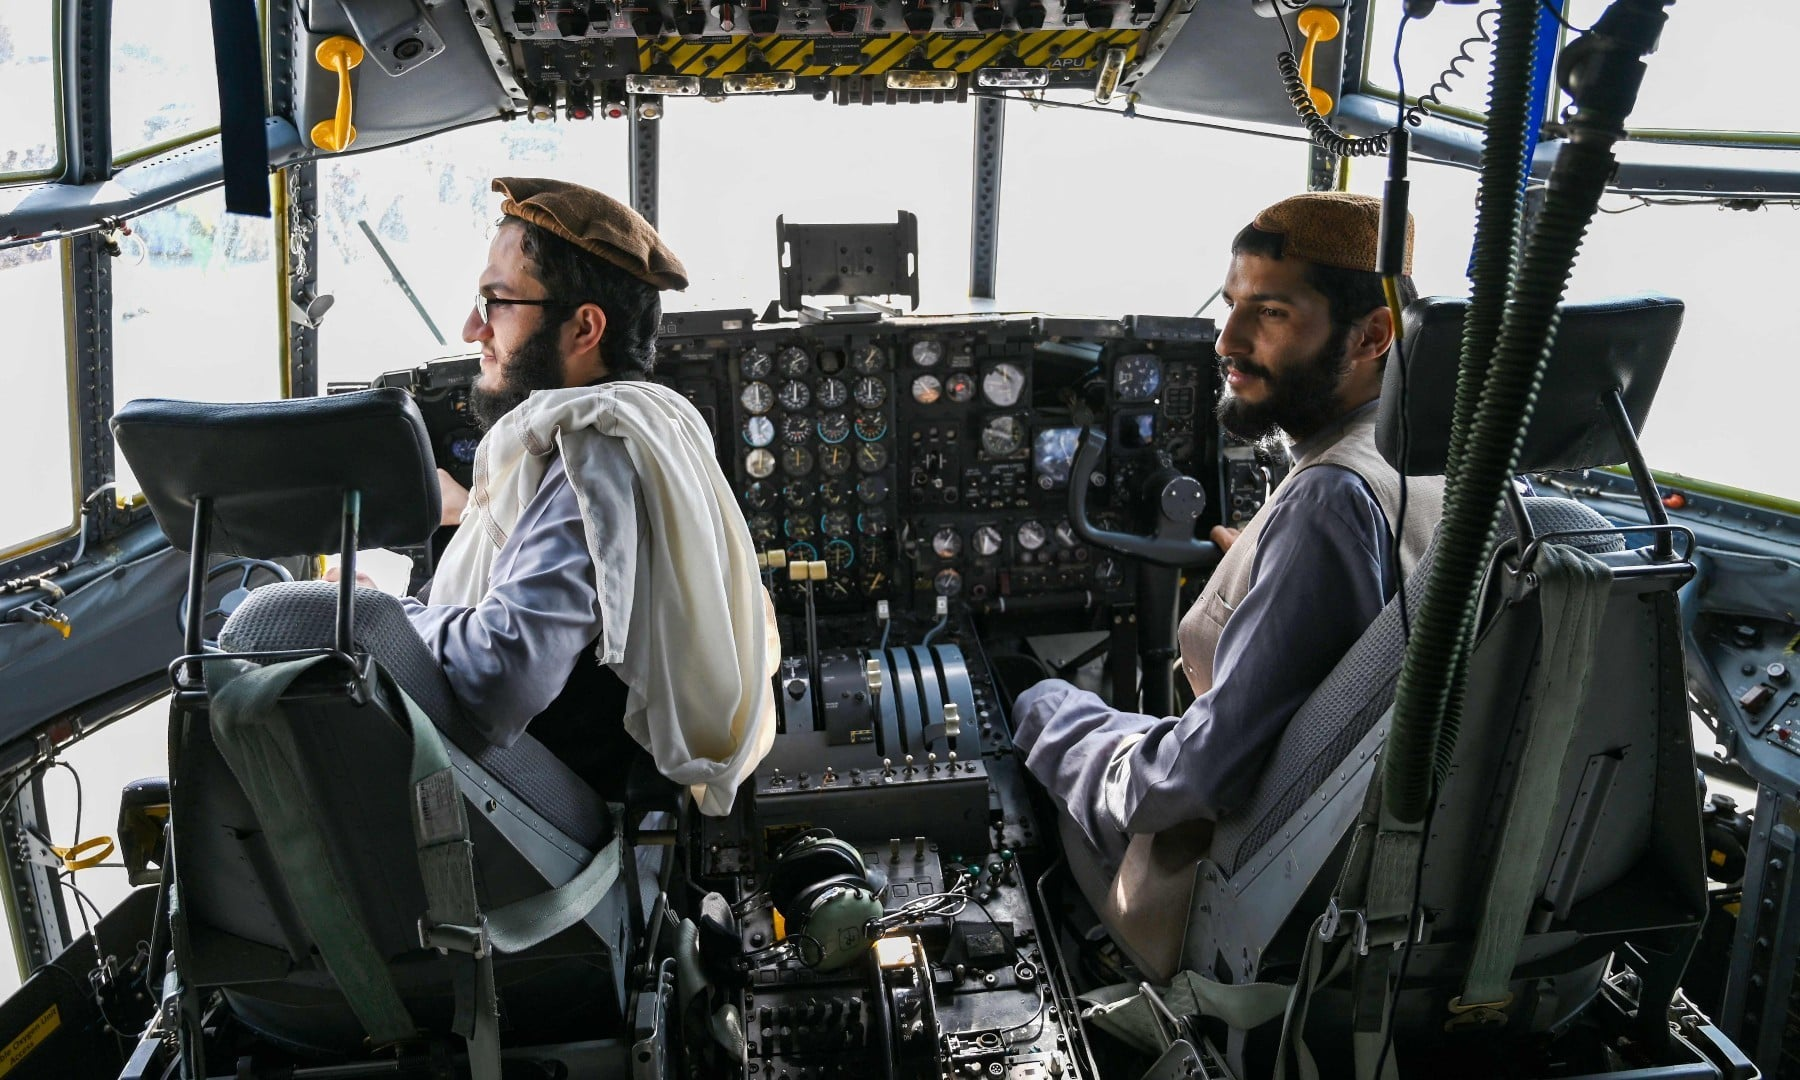 Taliban fighters sit in the cockpit of an Afghan Air Force aircraft at the airport in Kabul on August 3. — AFP